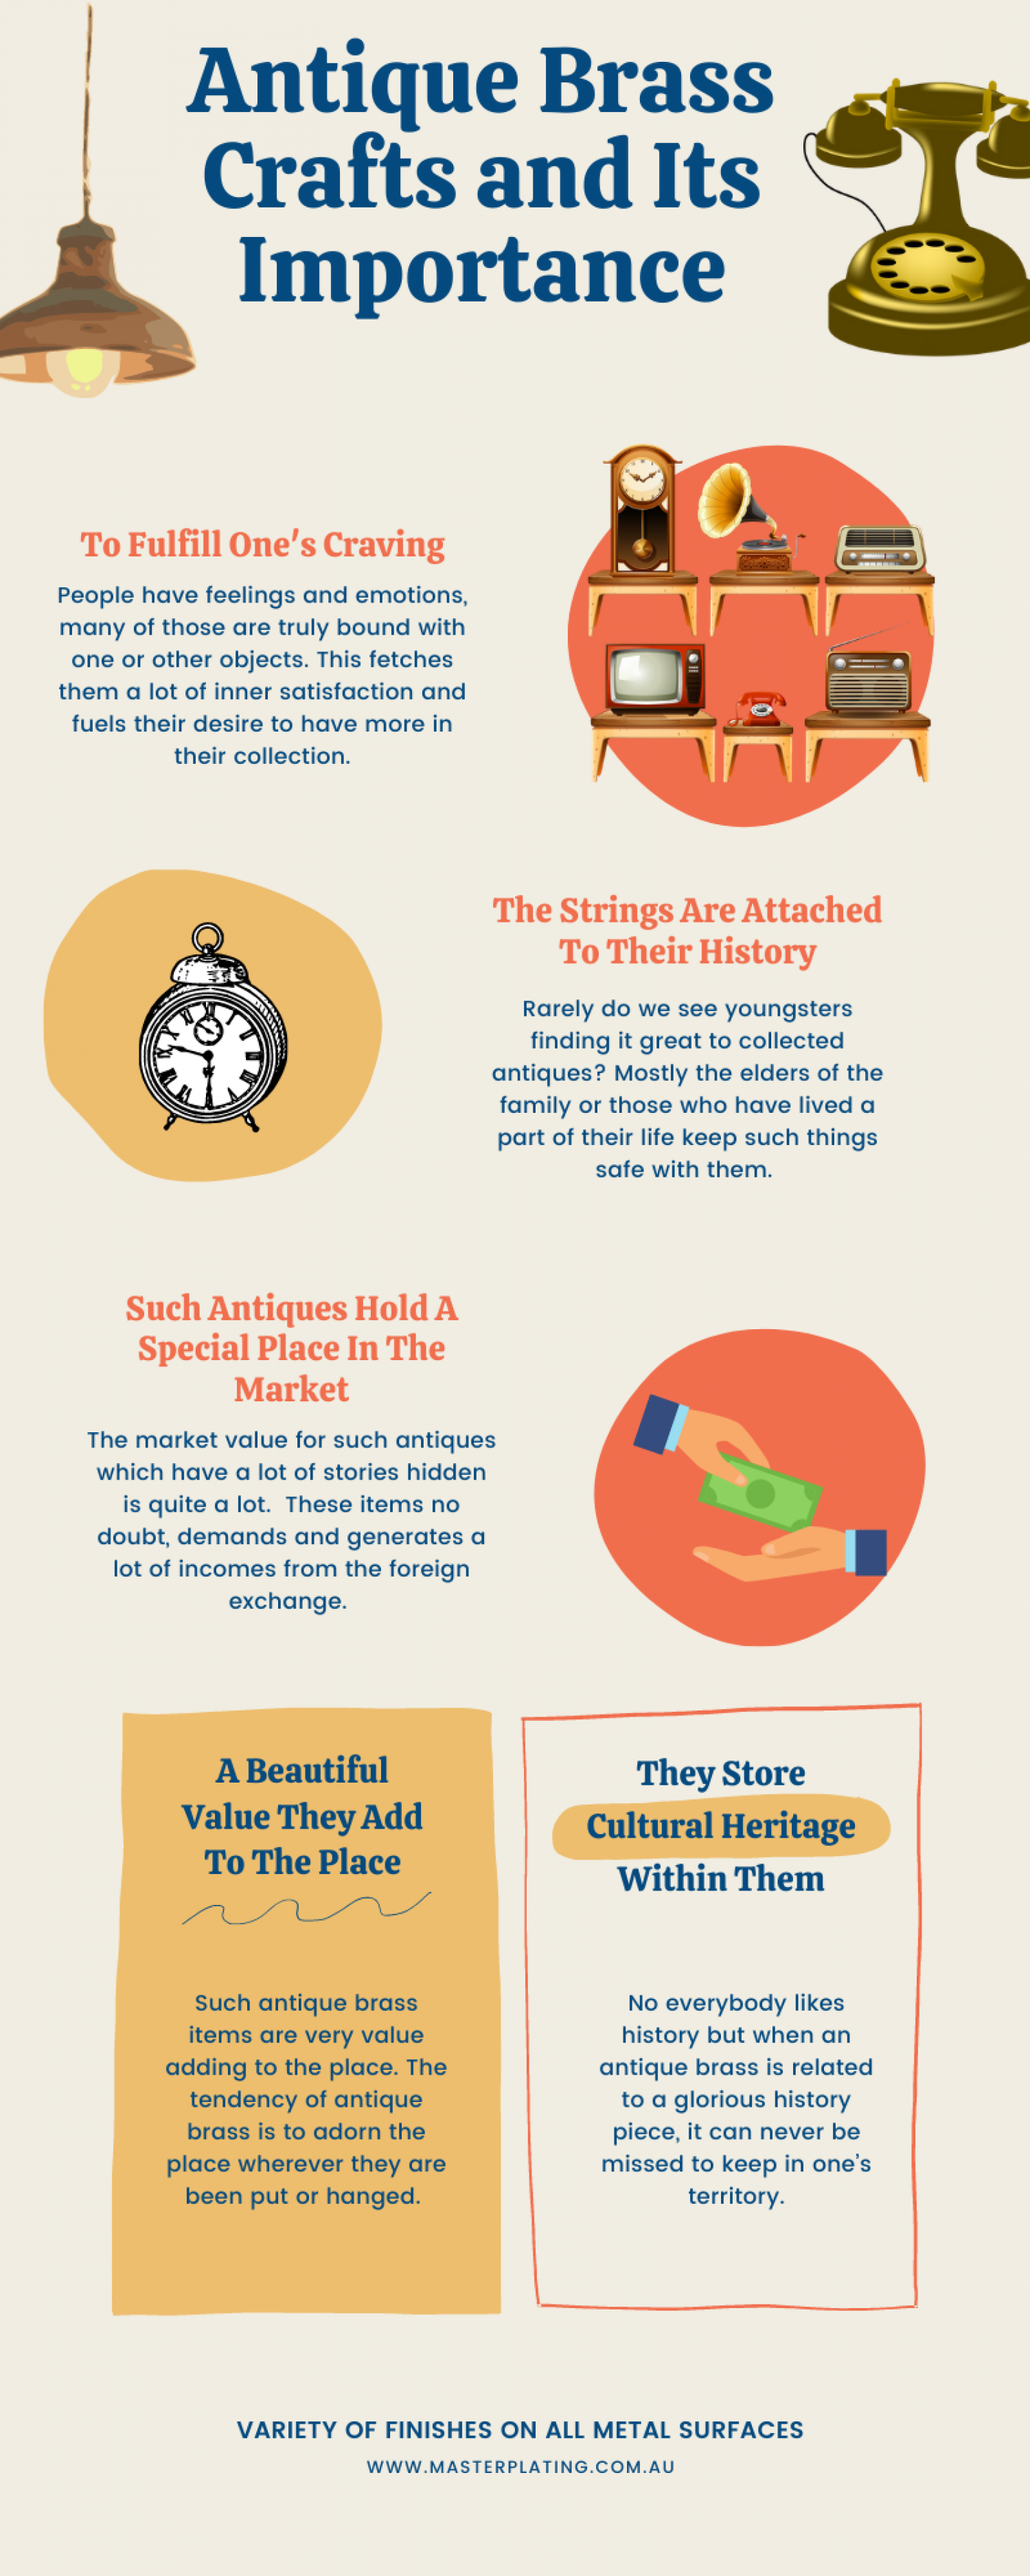 Antique Brass Crafts and Its Importance Infographic